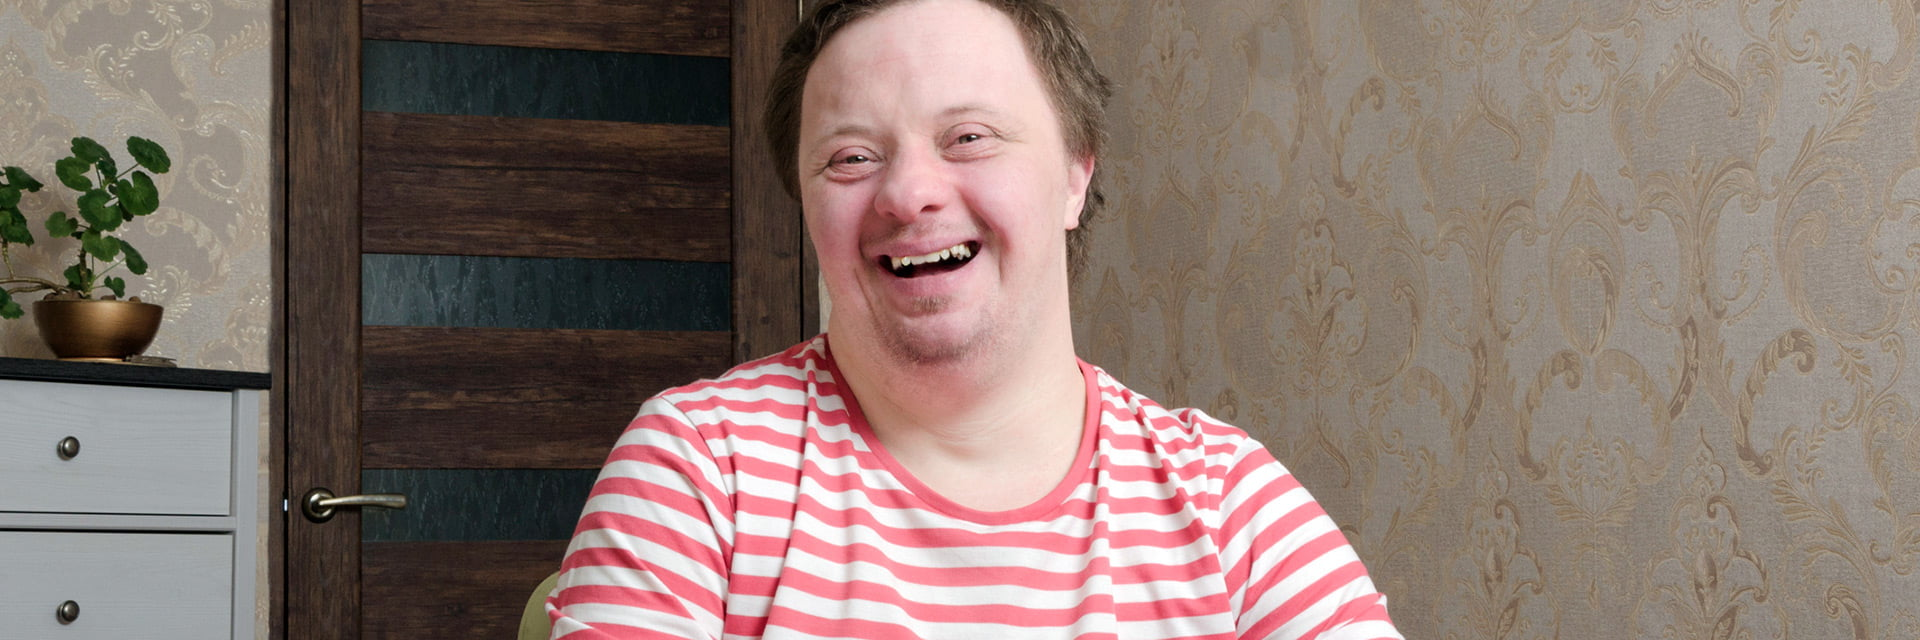 Man with a disability in a Specialist Disability Accommodation Service